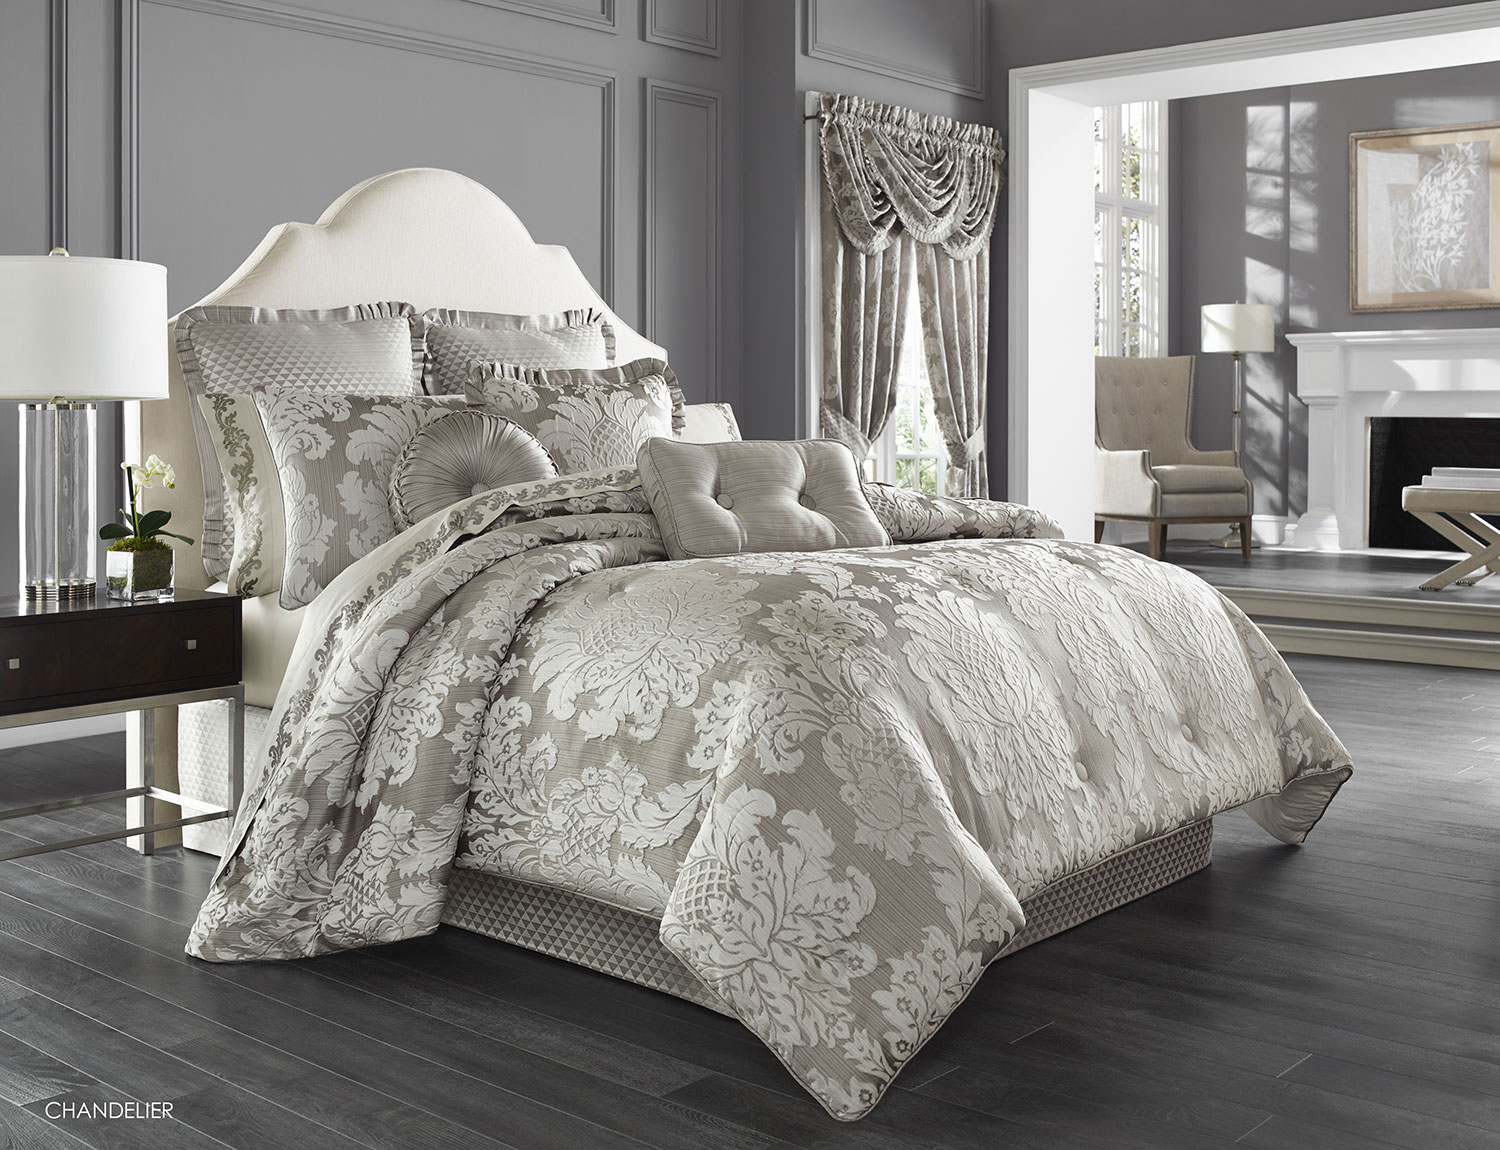 Chandelier by j queen new york for Luxury hotel 660 collection bed skirt